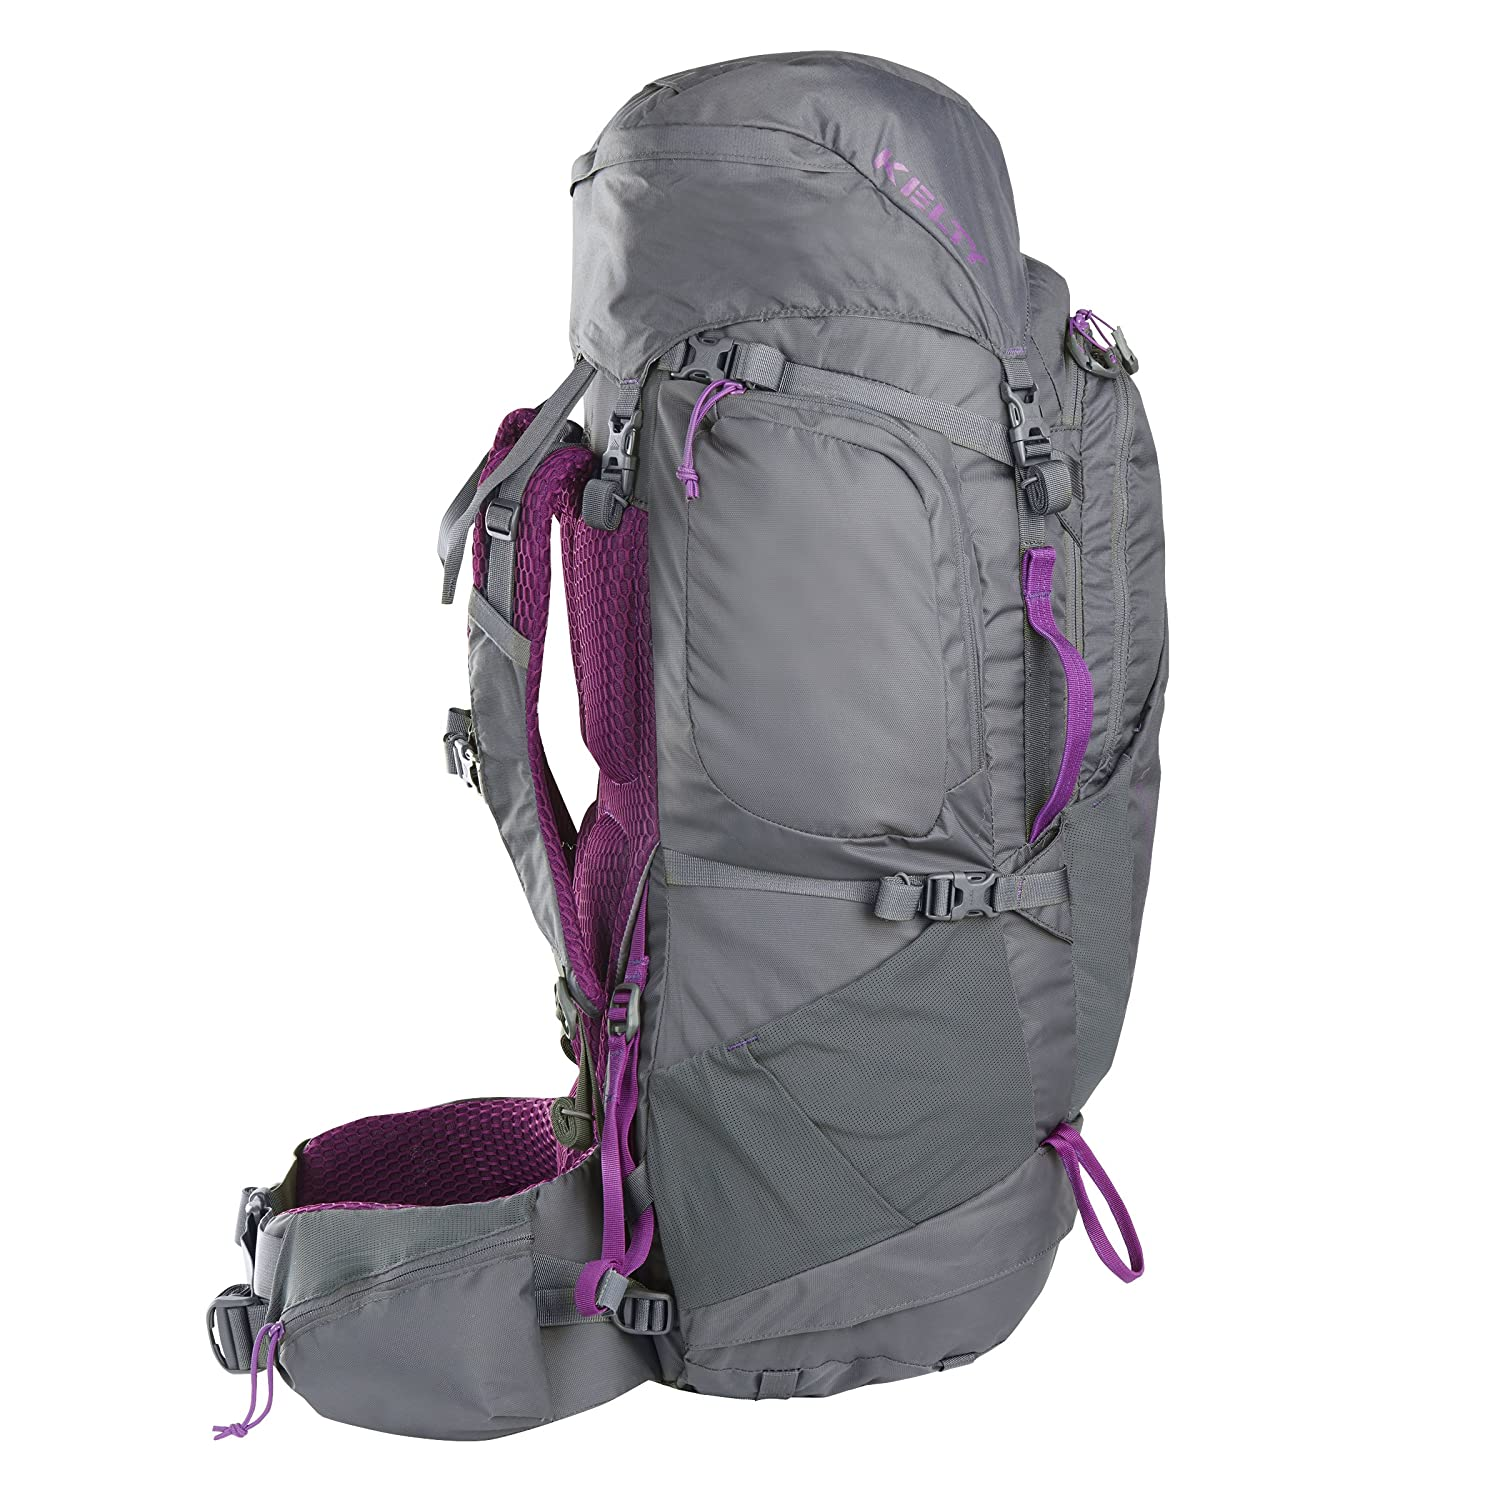 Amazon.com : Kelty Women's Coyote 60 Backpack, Dark Shadow ...